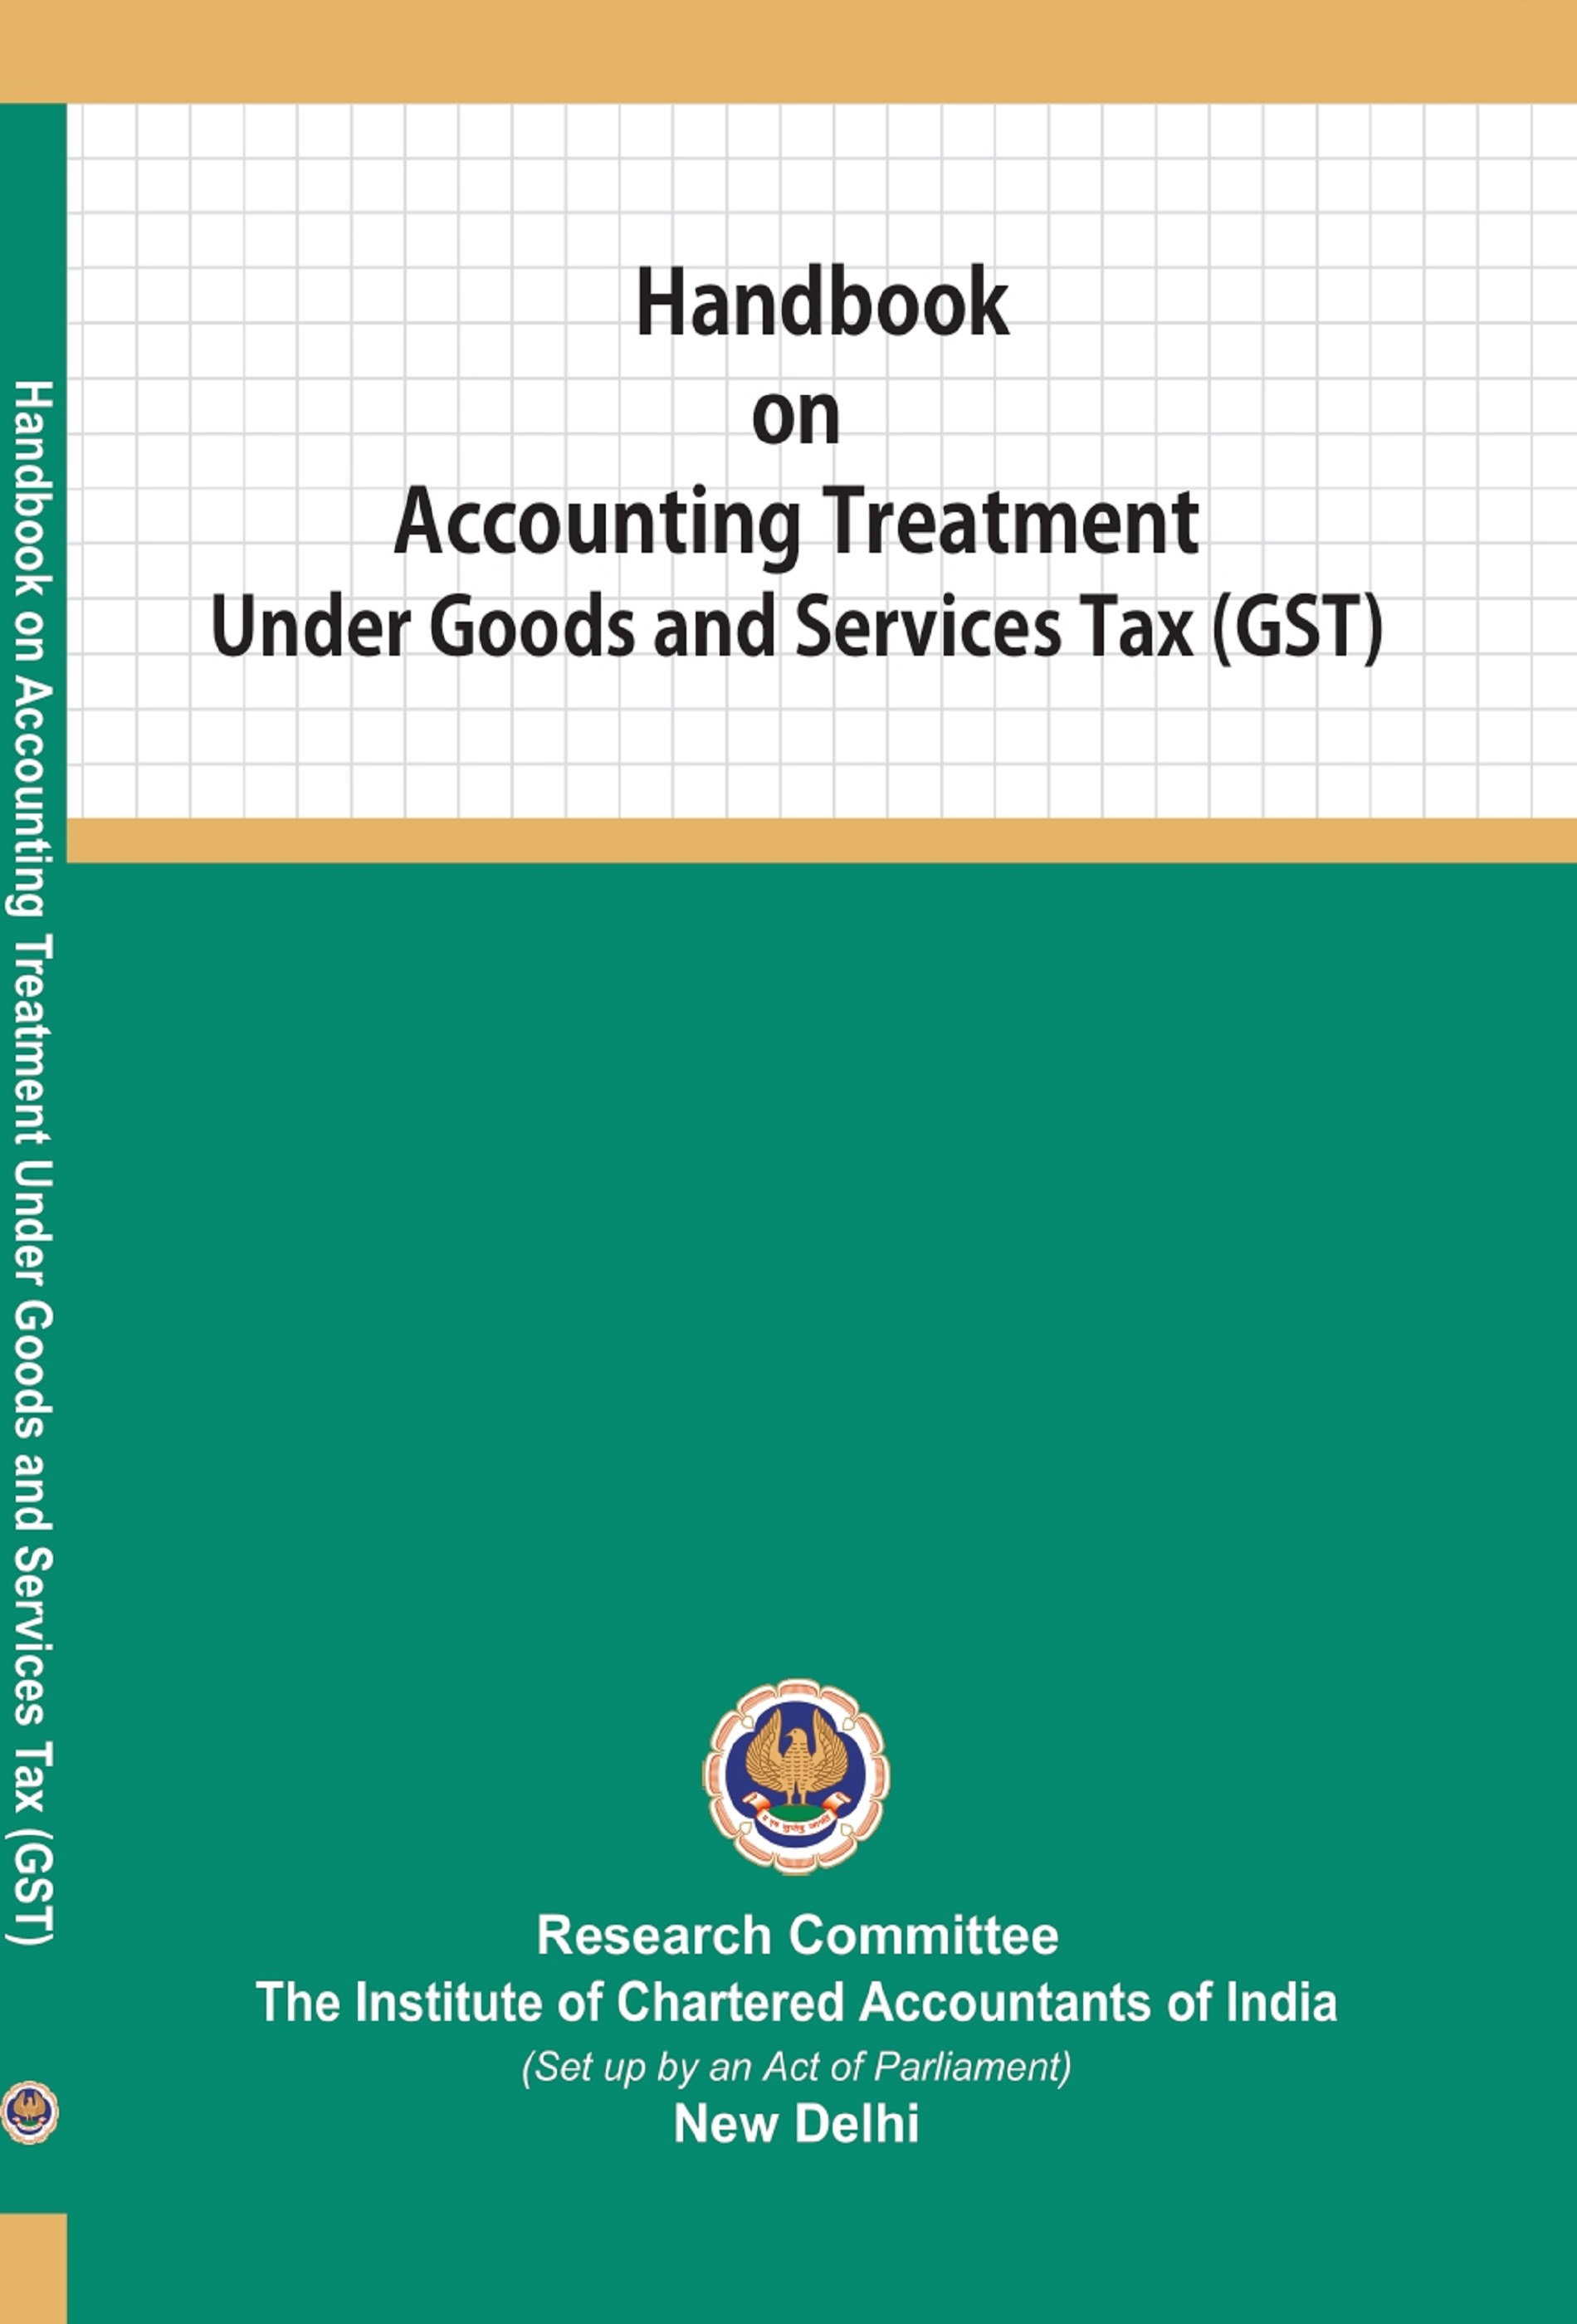 Handbook on Accounting Treatment Under Goods and Services Tax (GST) (July, 2019)